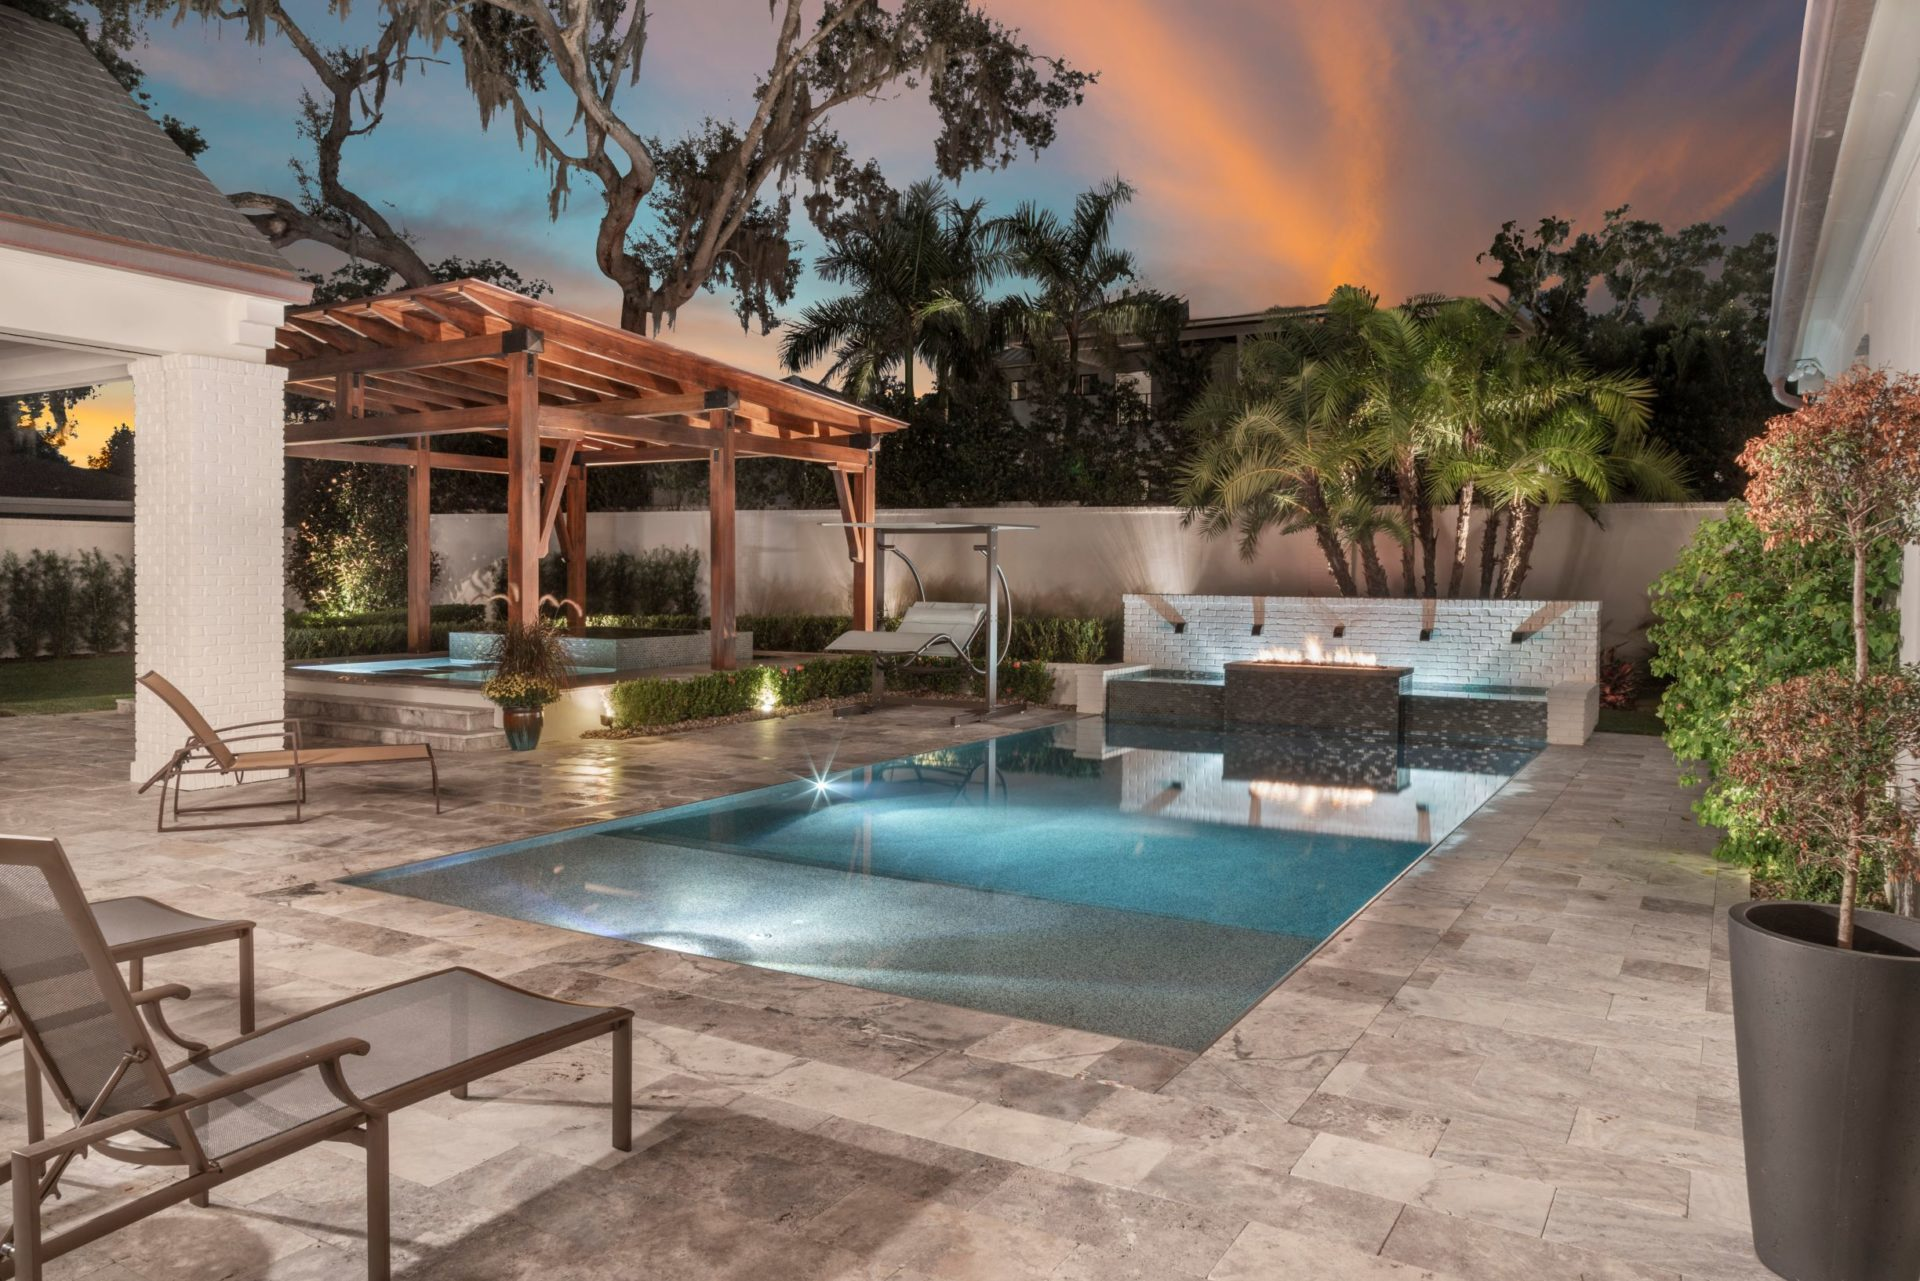 gorgeous backyard with pool and gazebo built by Orlando builder Einheit custom homes